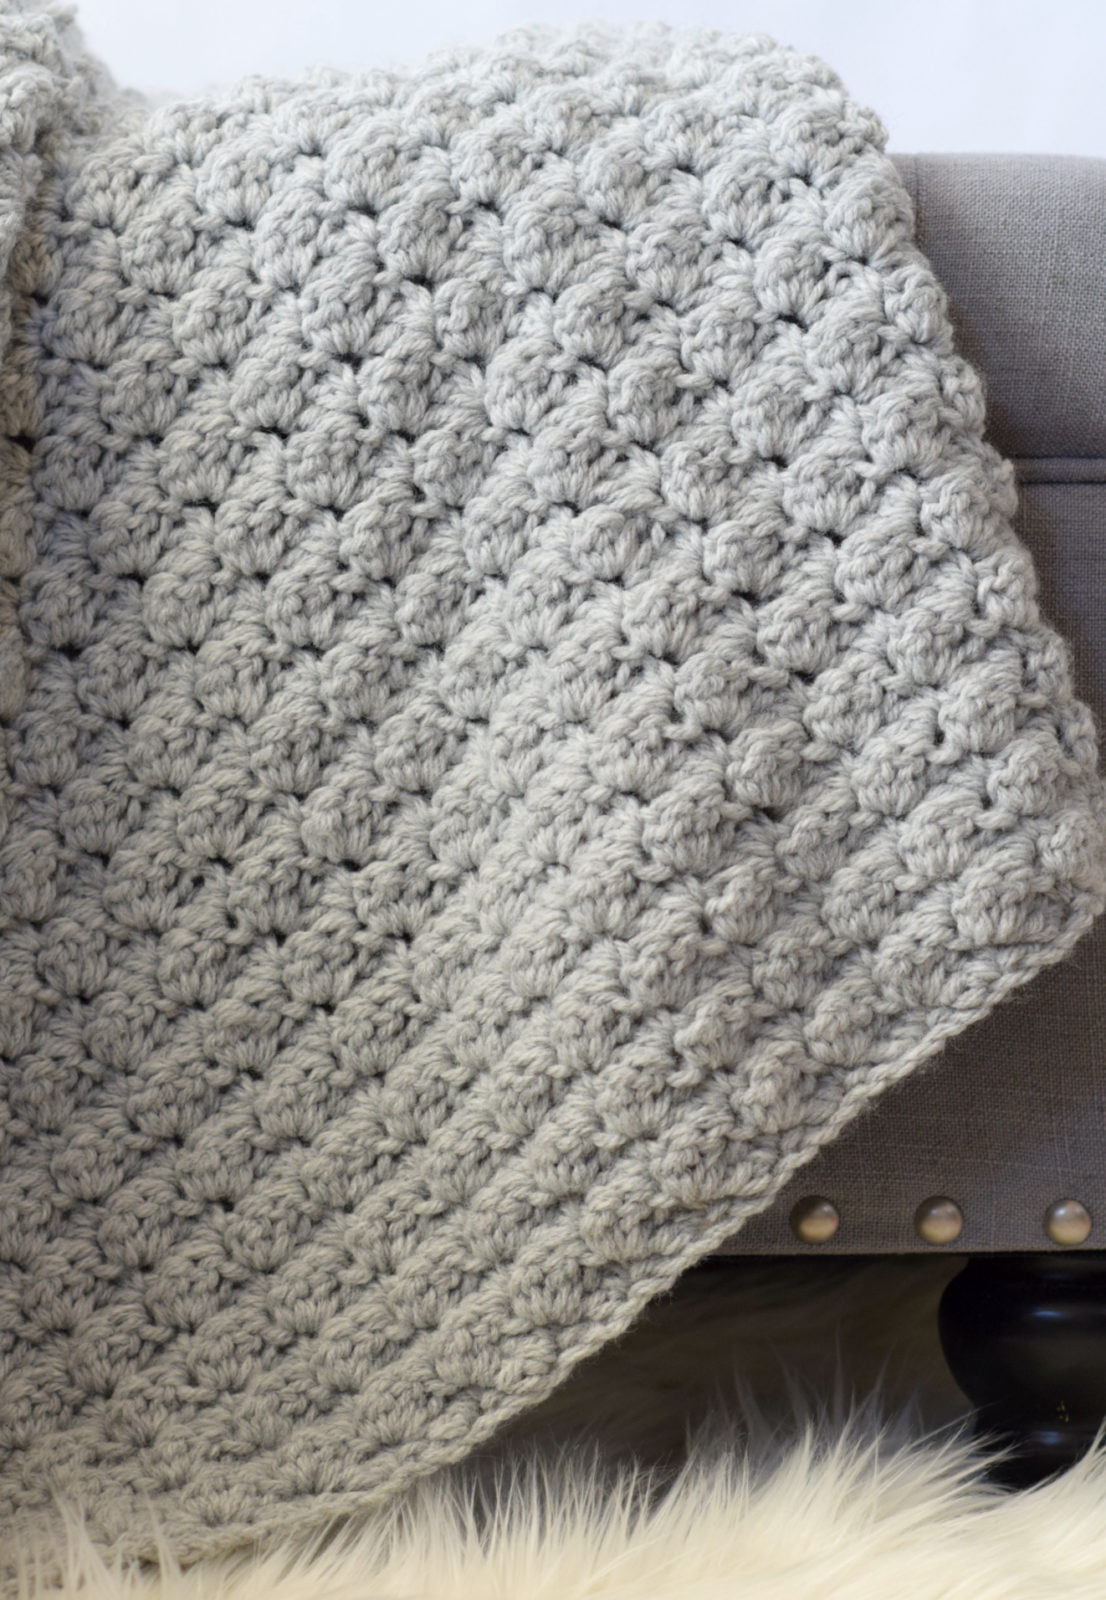 easy crochet baby blanket of course, wool often isnu0027t typically the first choice for making a baby eejojnk